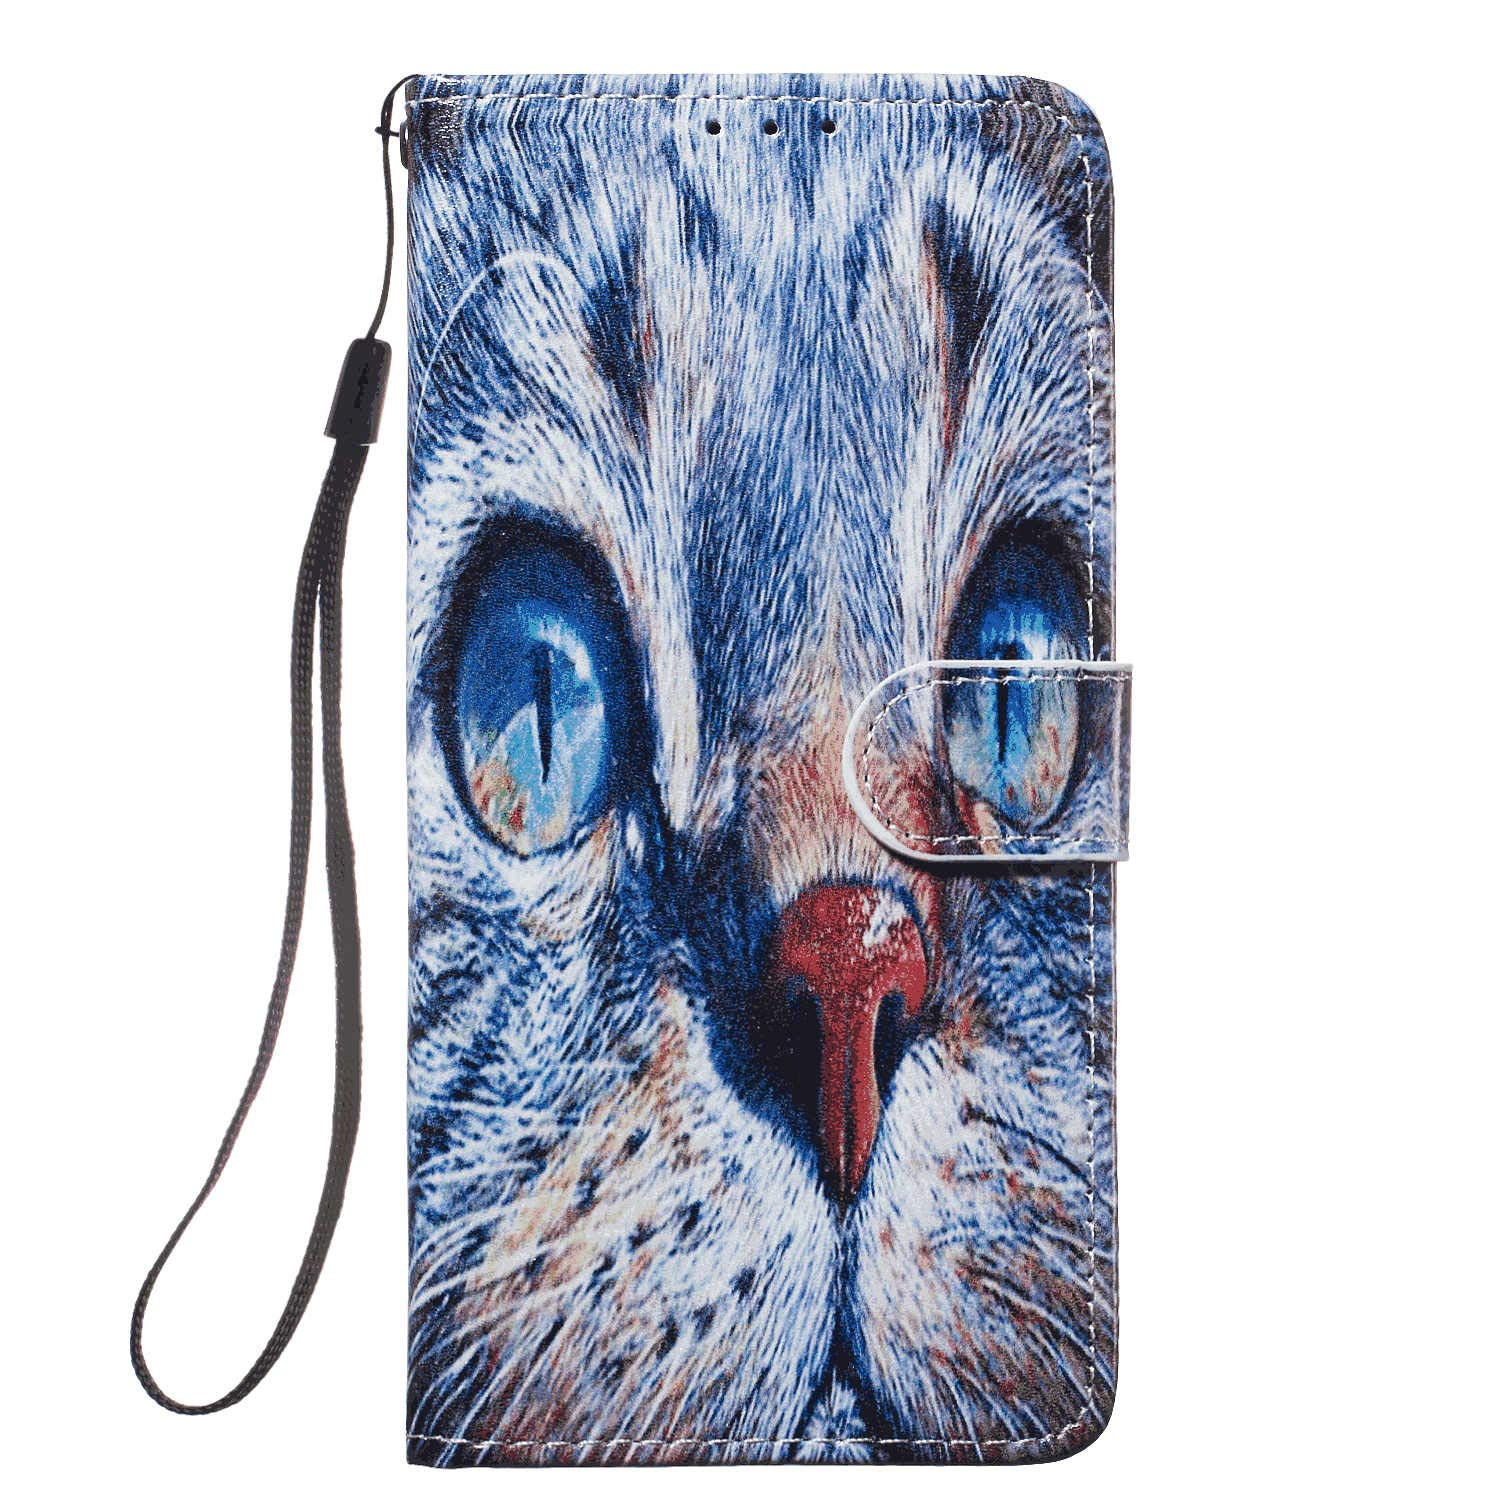 Cover for Samsung Galaxy A60 Leather Extra-Shockproof Business Mobile Phone case Card Holders Kickstand with Free Waterproof-Bag Delicate Samsung Galaxy A60 Flip Case